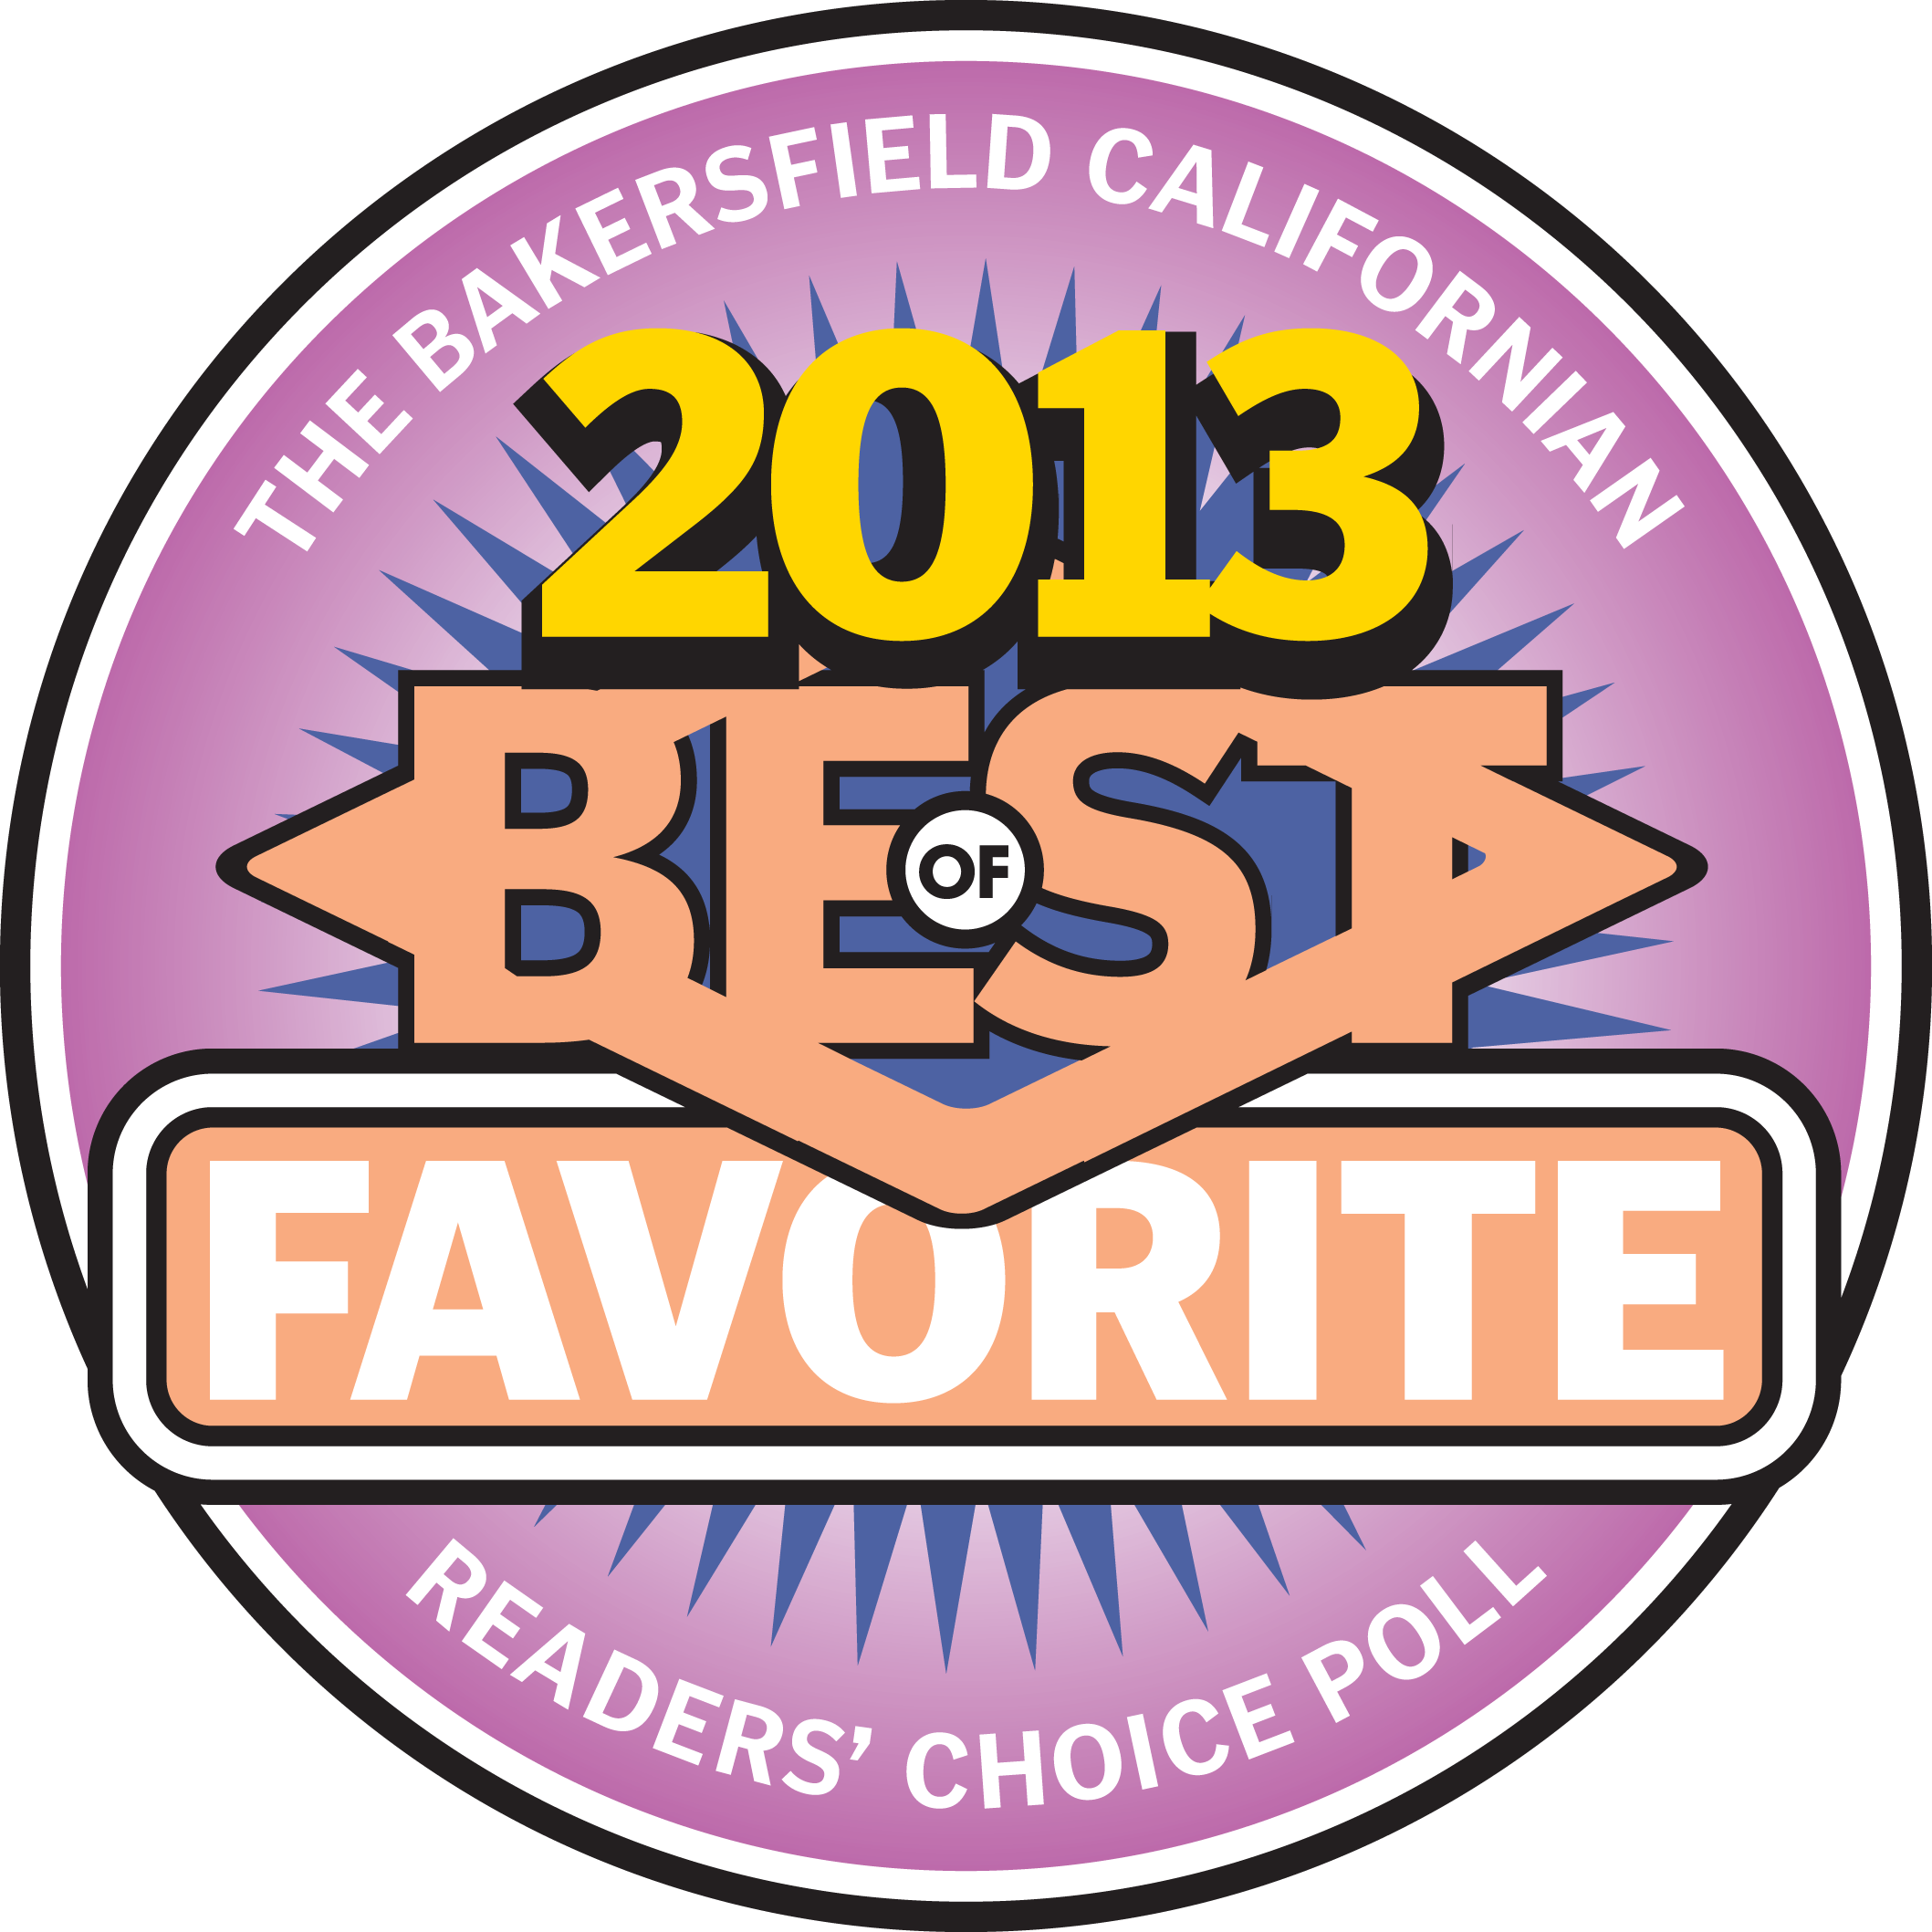 Best of_Favorite logo 2013